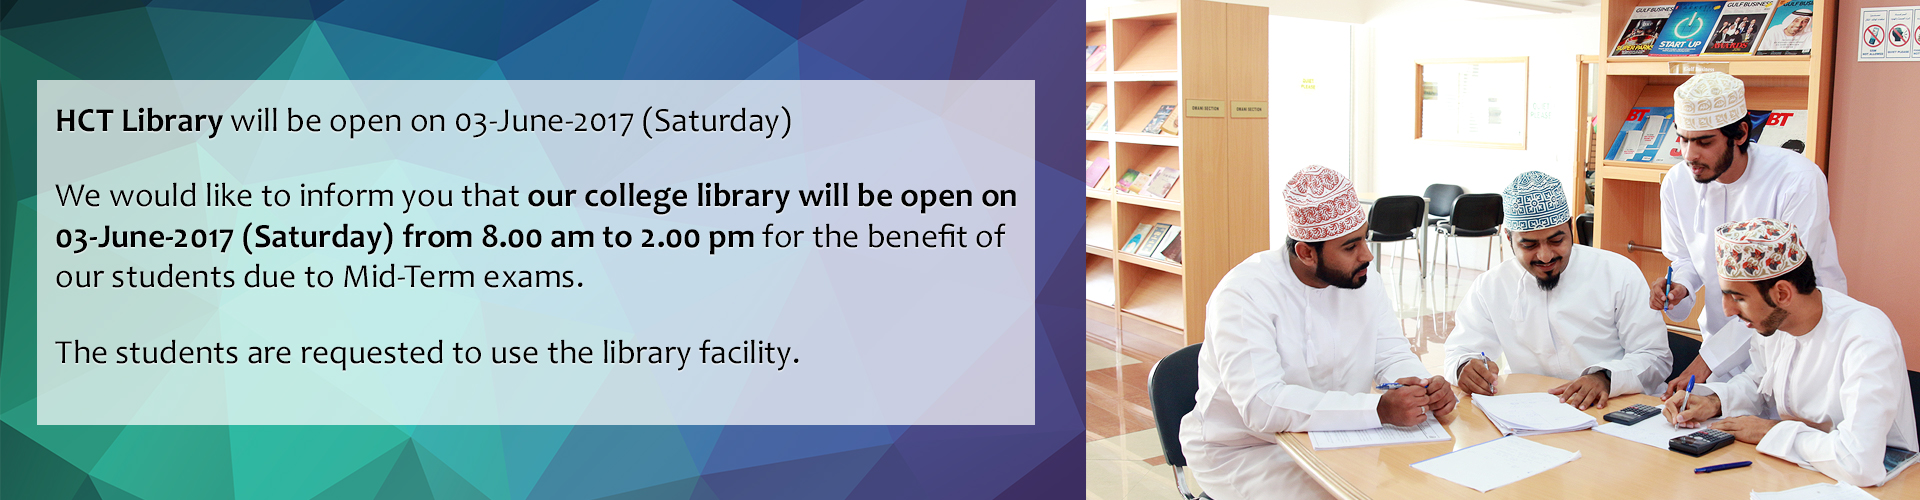 HCT Library will be open on 03-June-2017 (Saturday)